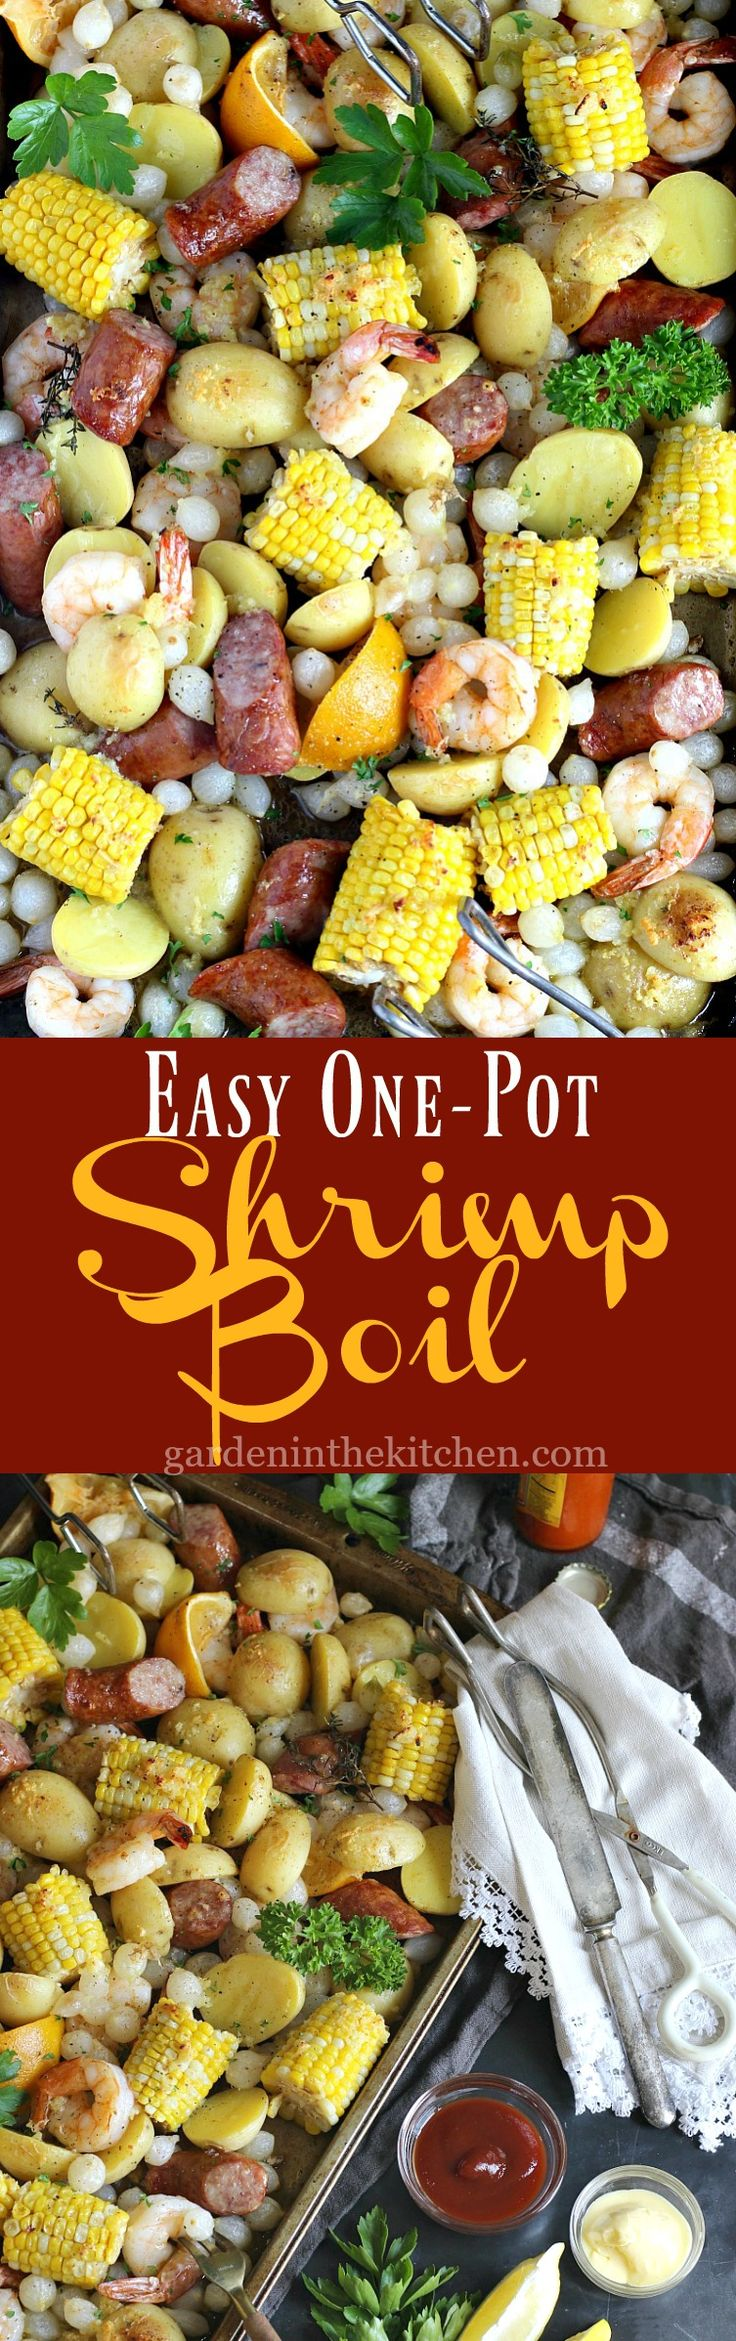 Easy One Pot Shrimp Boil | Celebrate summer and create memories around the table with this easy One Pot Shrimp Boil flavored with melted garlic butter. @GardeninKitchen